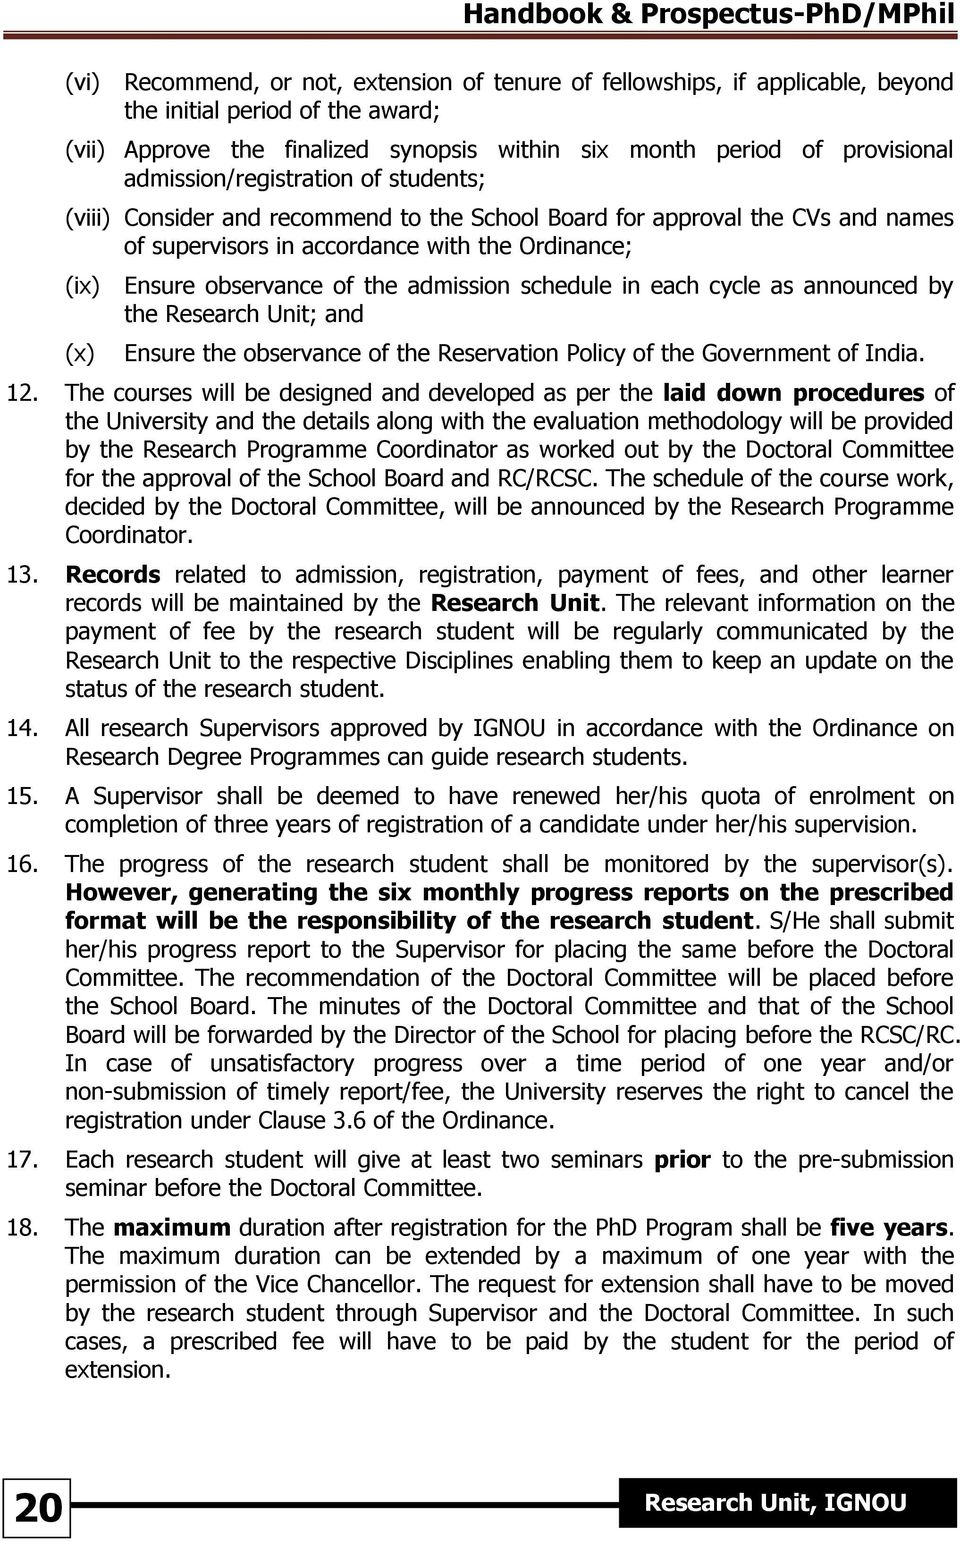 admission schedule in each cycle as announced by the Research Unit; and (x) Ensure the observance of the Reservation Policy of the Government of India. 12.